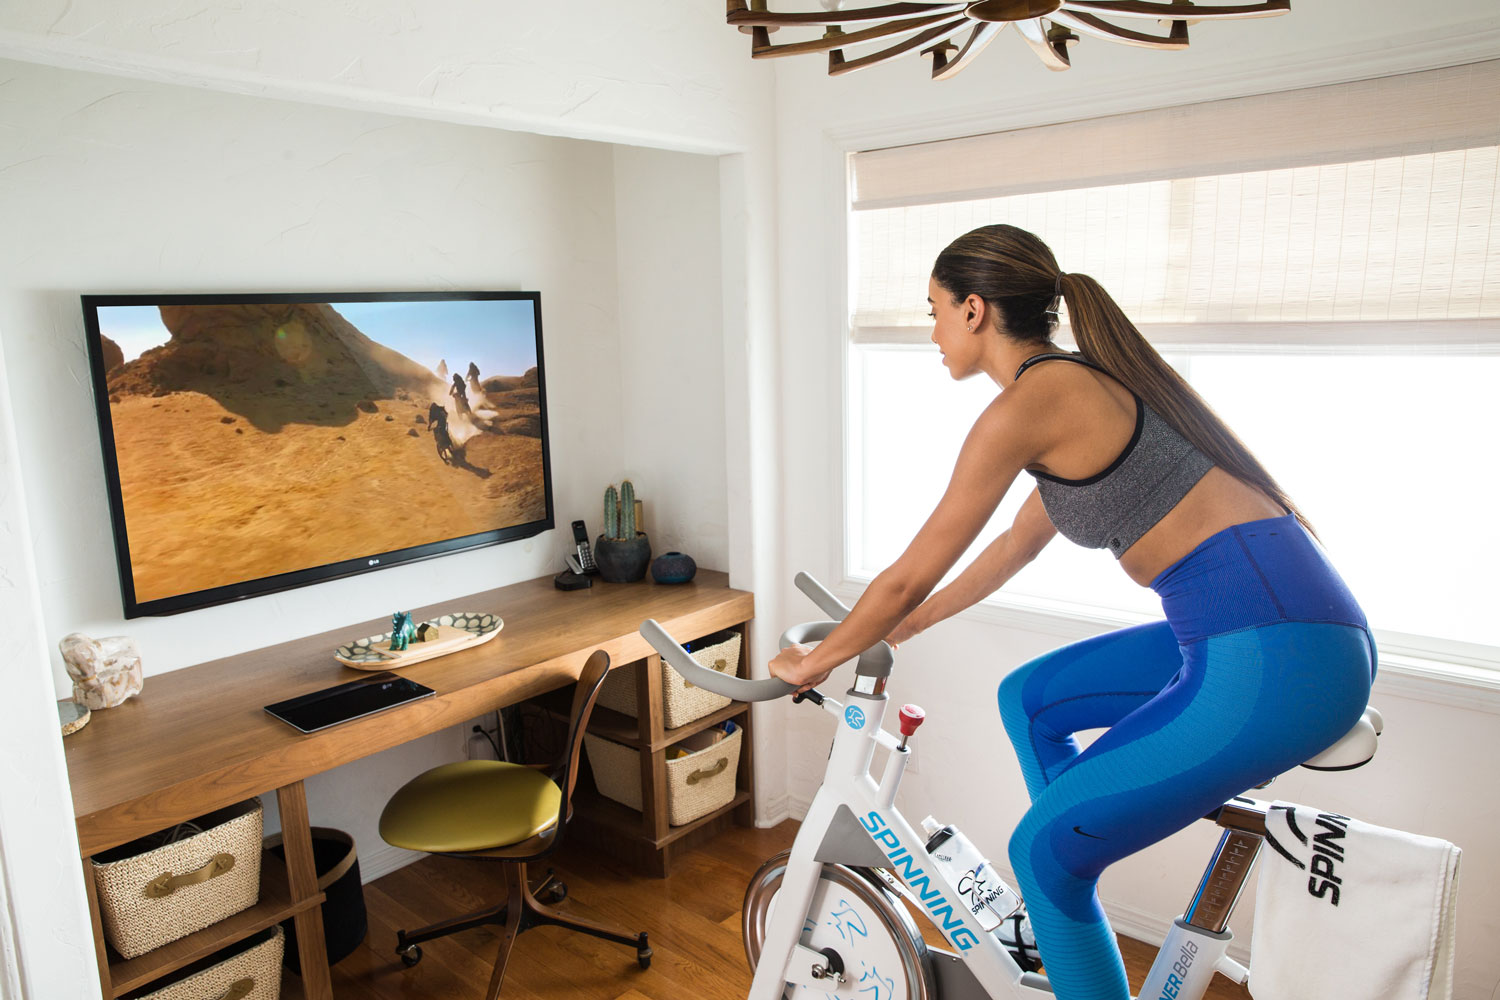 8 Outside the Box Ways to Enhance Your at-home Spinning® Experience - Watch TV